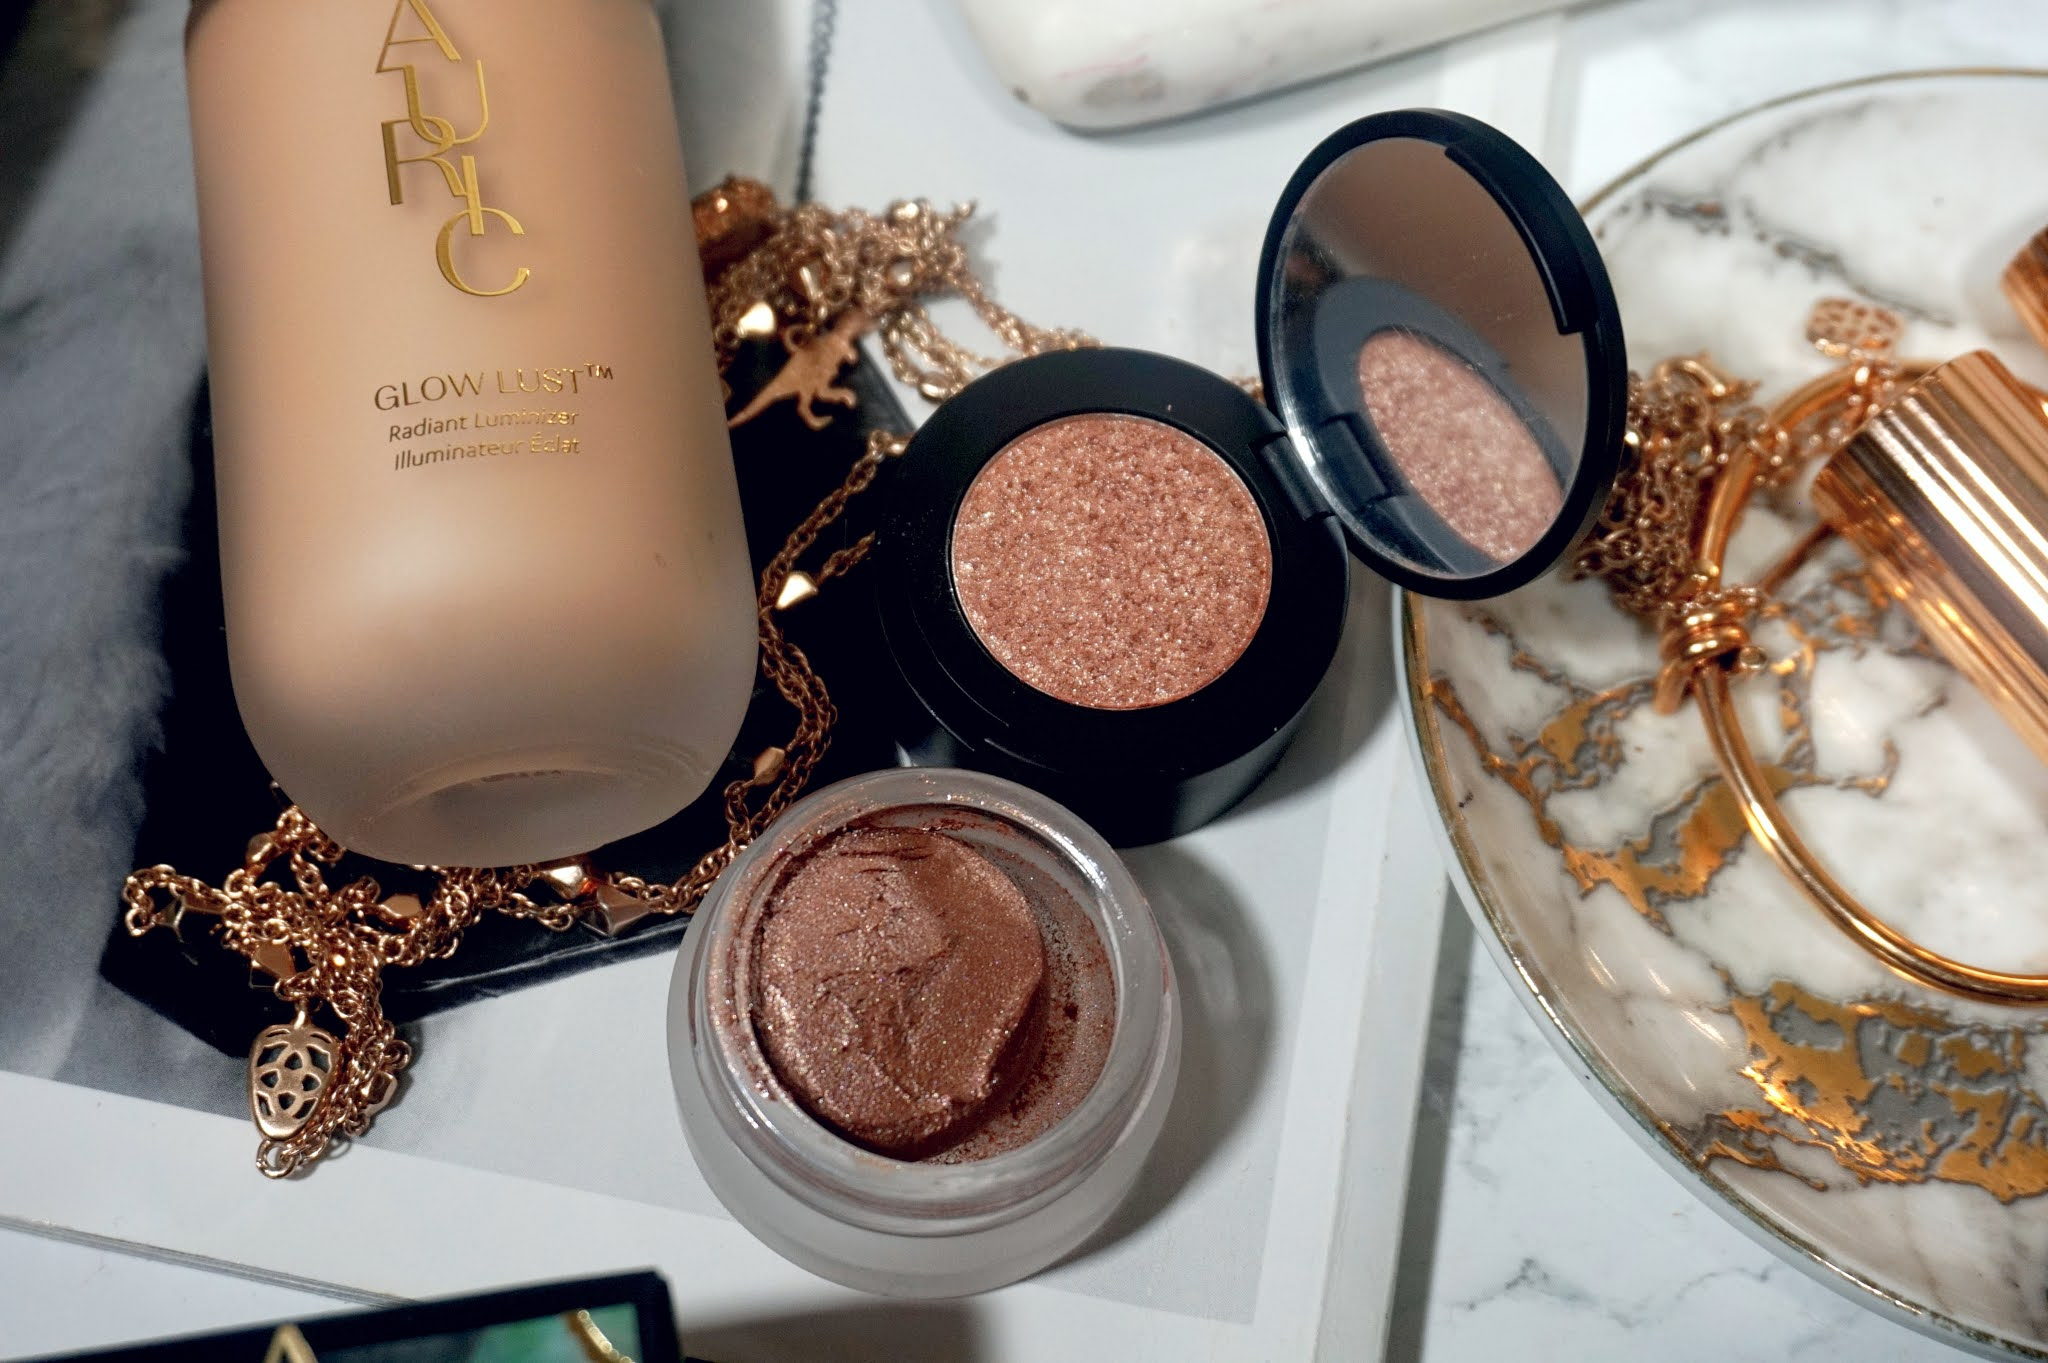 AURIC Cosmetics Smoke Reflect Cream + Powder Eye Shadow Duo Review and Swatches